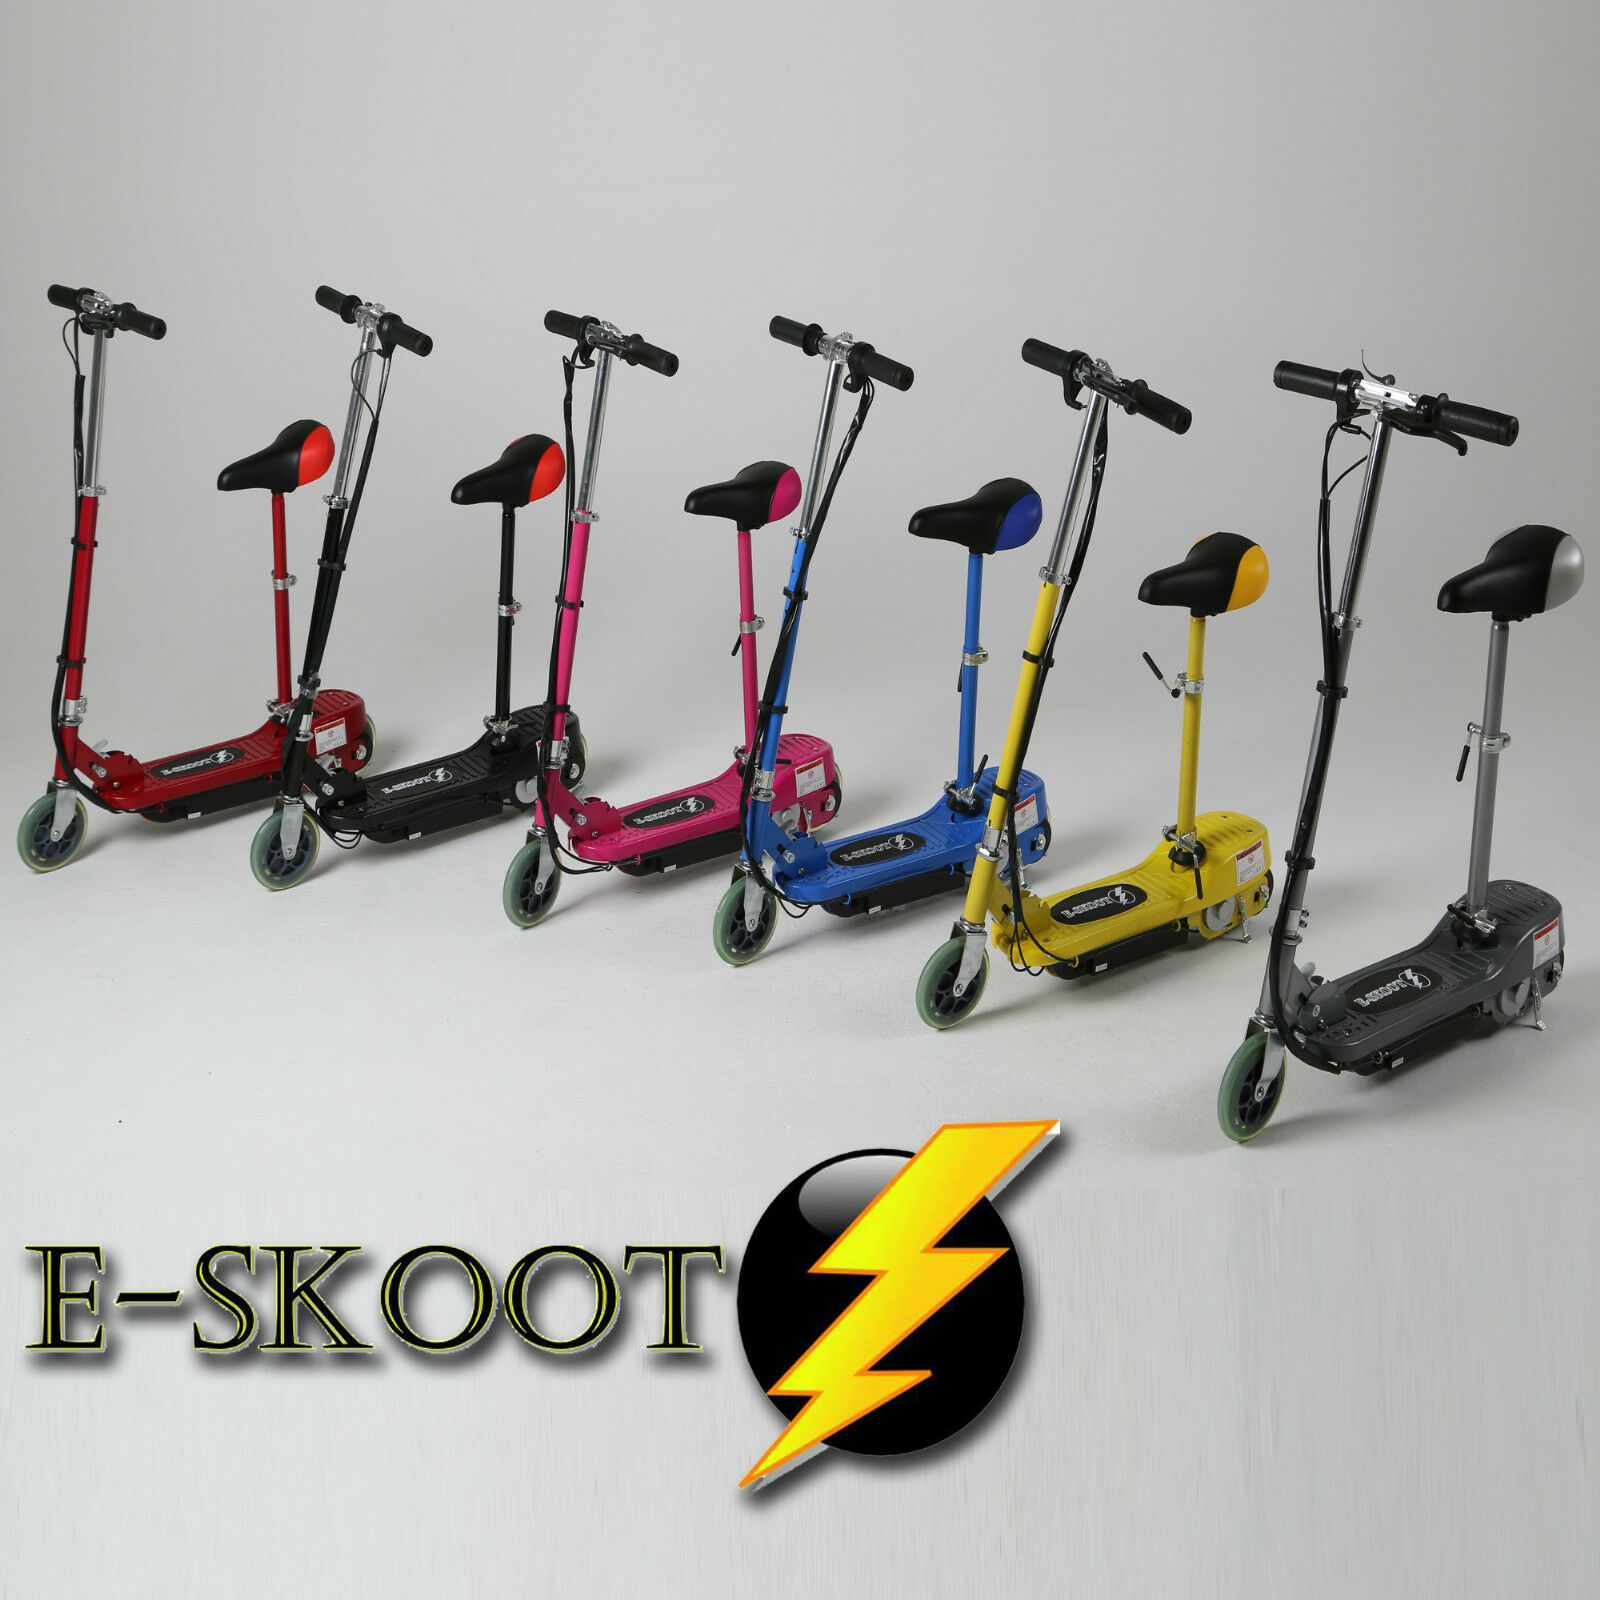 Electric Scooter Kids Battery Ride On Toy Bike Stand Escooter Adjustable Seat